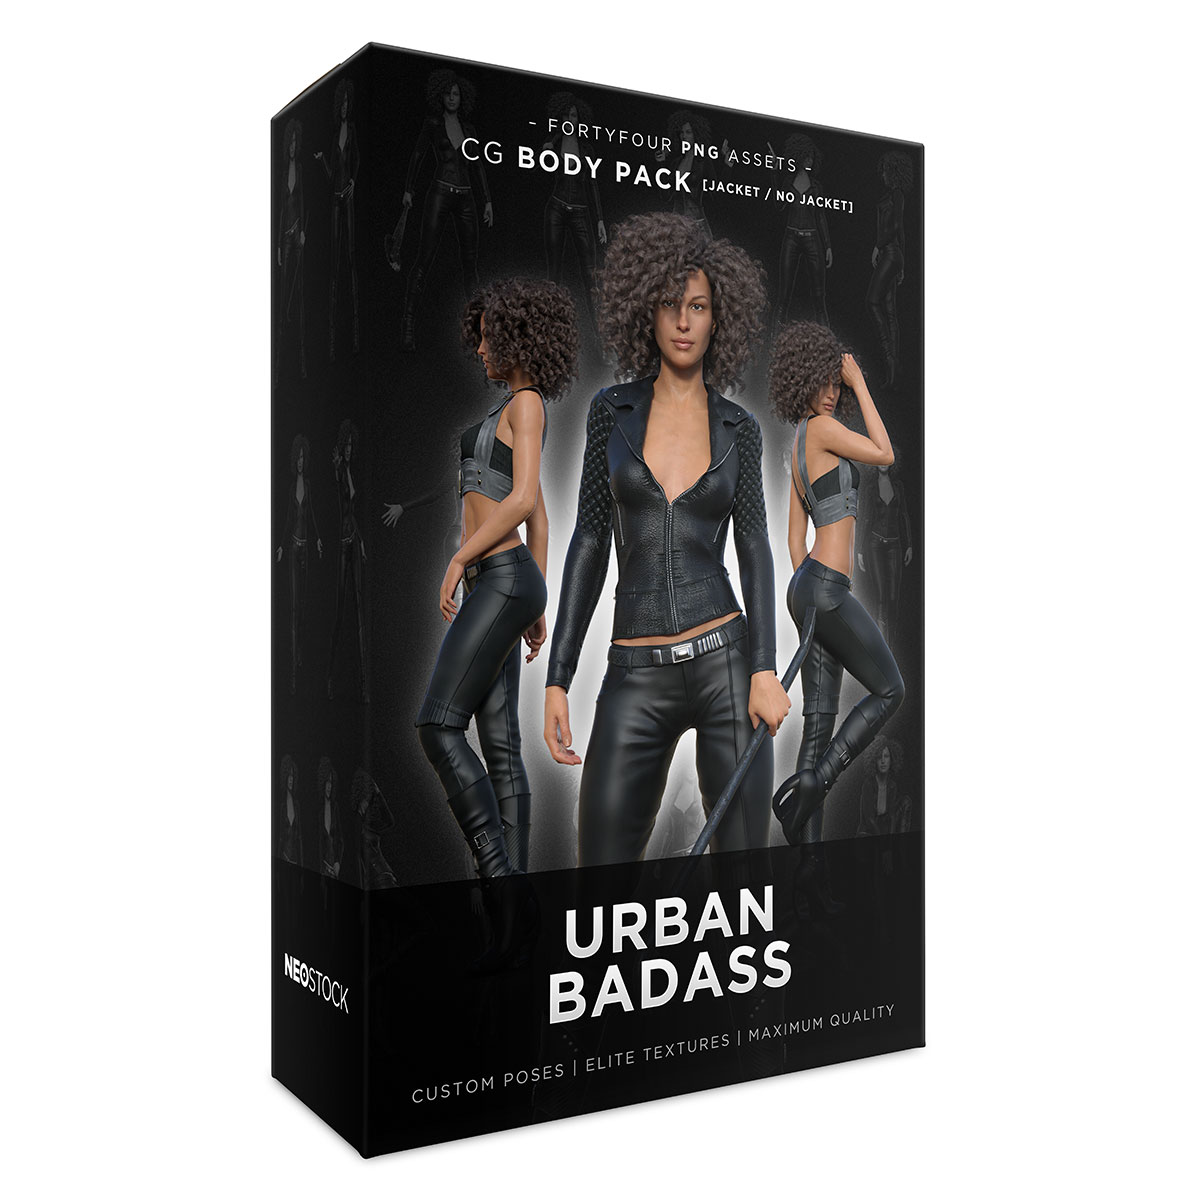 f urban badass product box sales